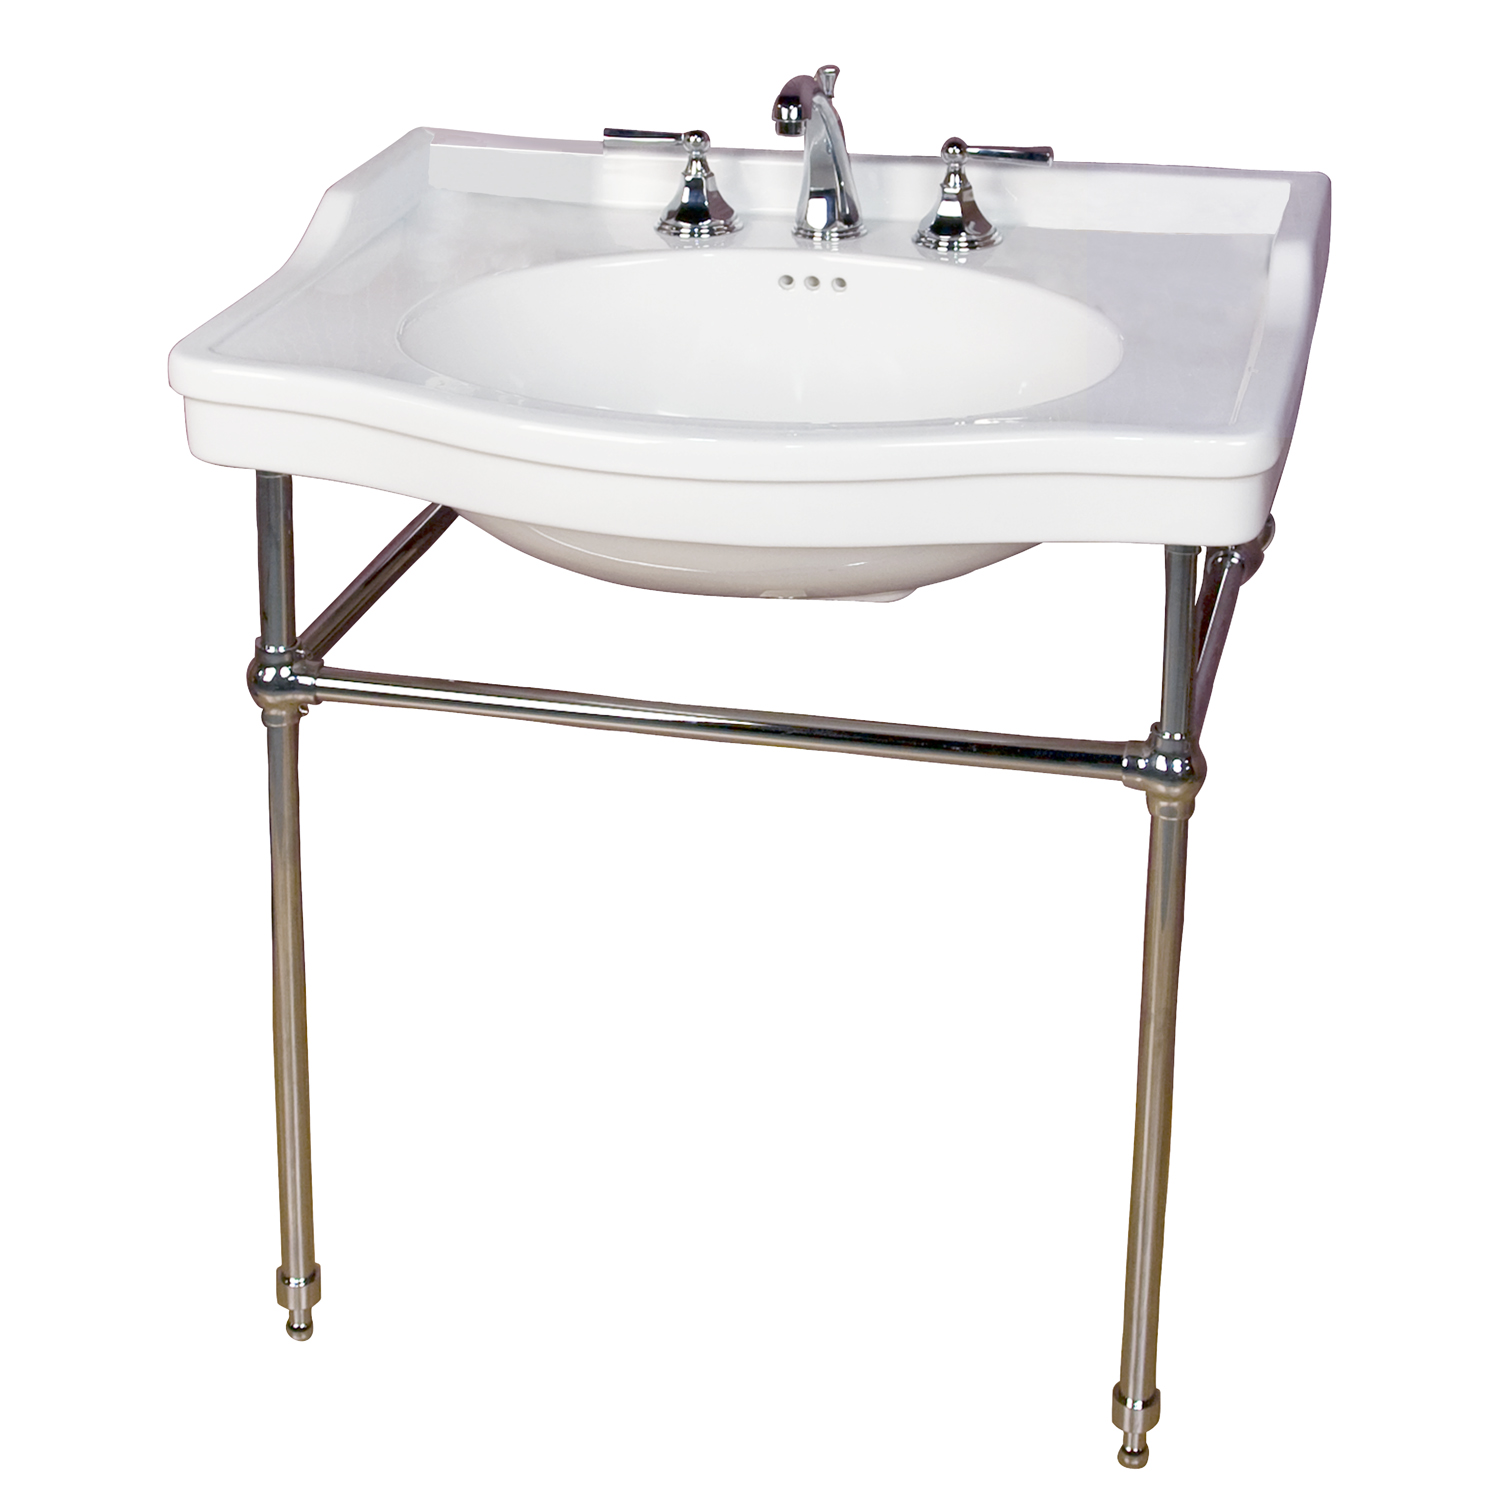 Enchanting barclay sinks single bowl double bowl stainless kitchen sink barclay sinks for kitchen ideas